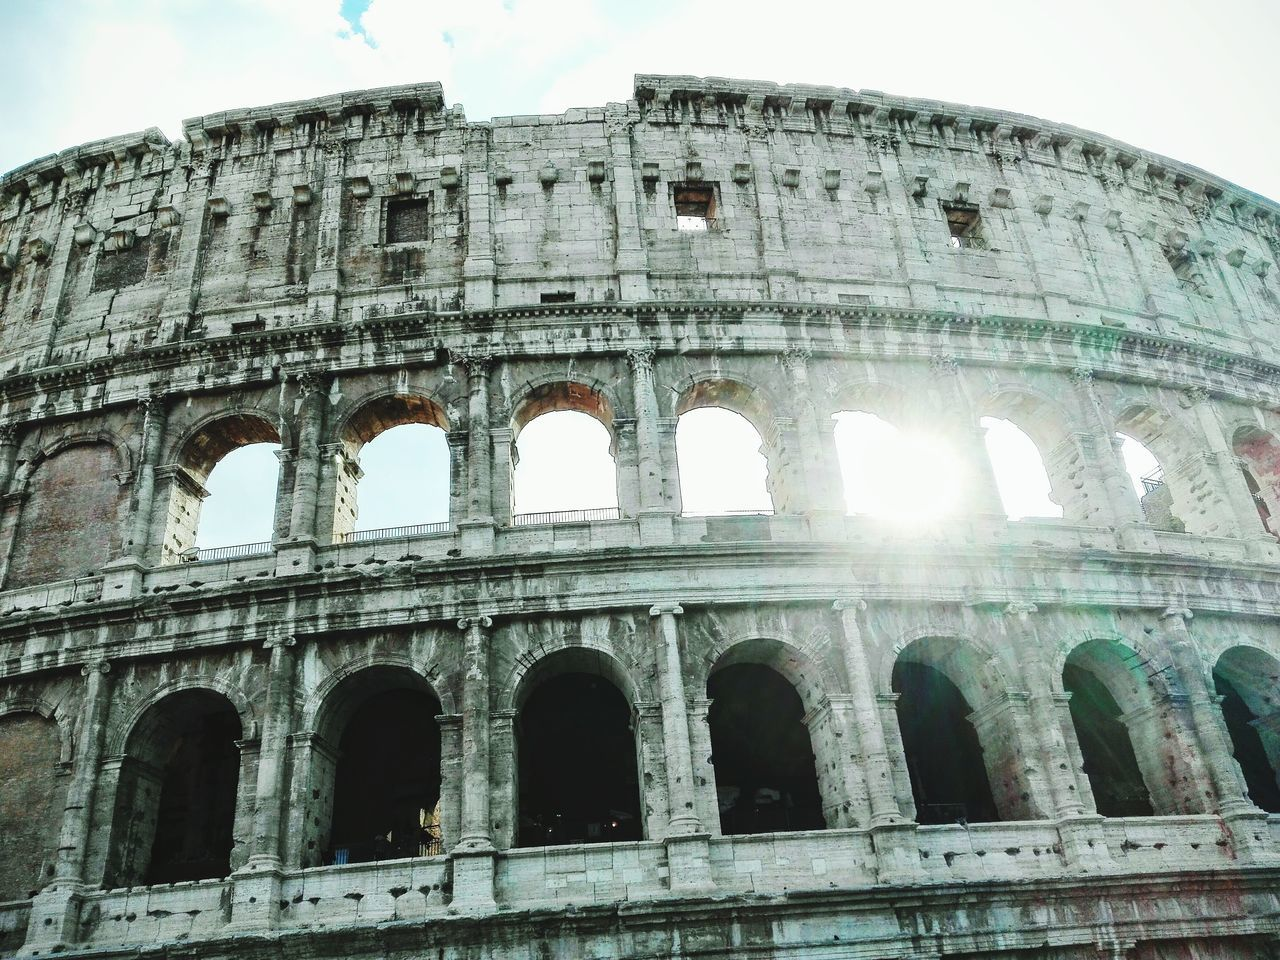 Rome wasn't build in a day. Architecture Sky Tourism Travel Destinations Built Structure City Ancient Civilization Ancient Colosseo, Rome,Fuji X Colosseum Rome Rome Italy Italy🇮🇹 Italia Photography No People Photooftheday Cloud - Sky Photographer Photographic Memory Followme Photograph Artistic Art My Year My View